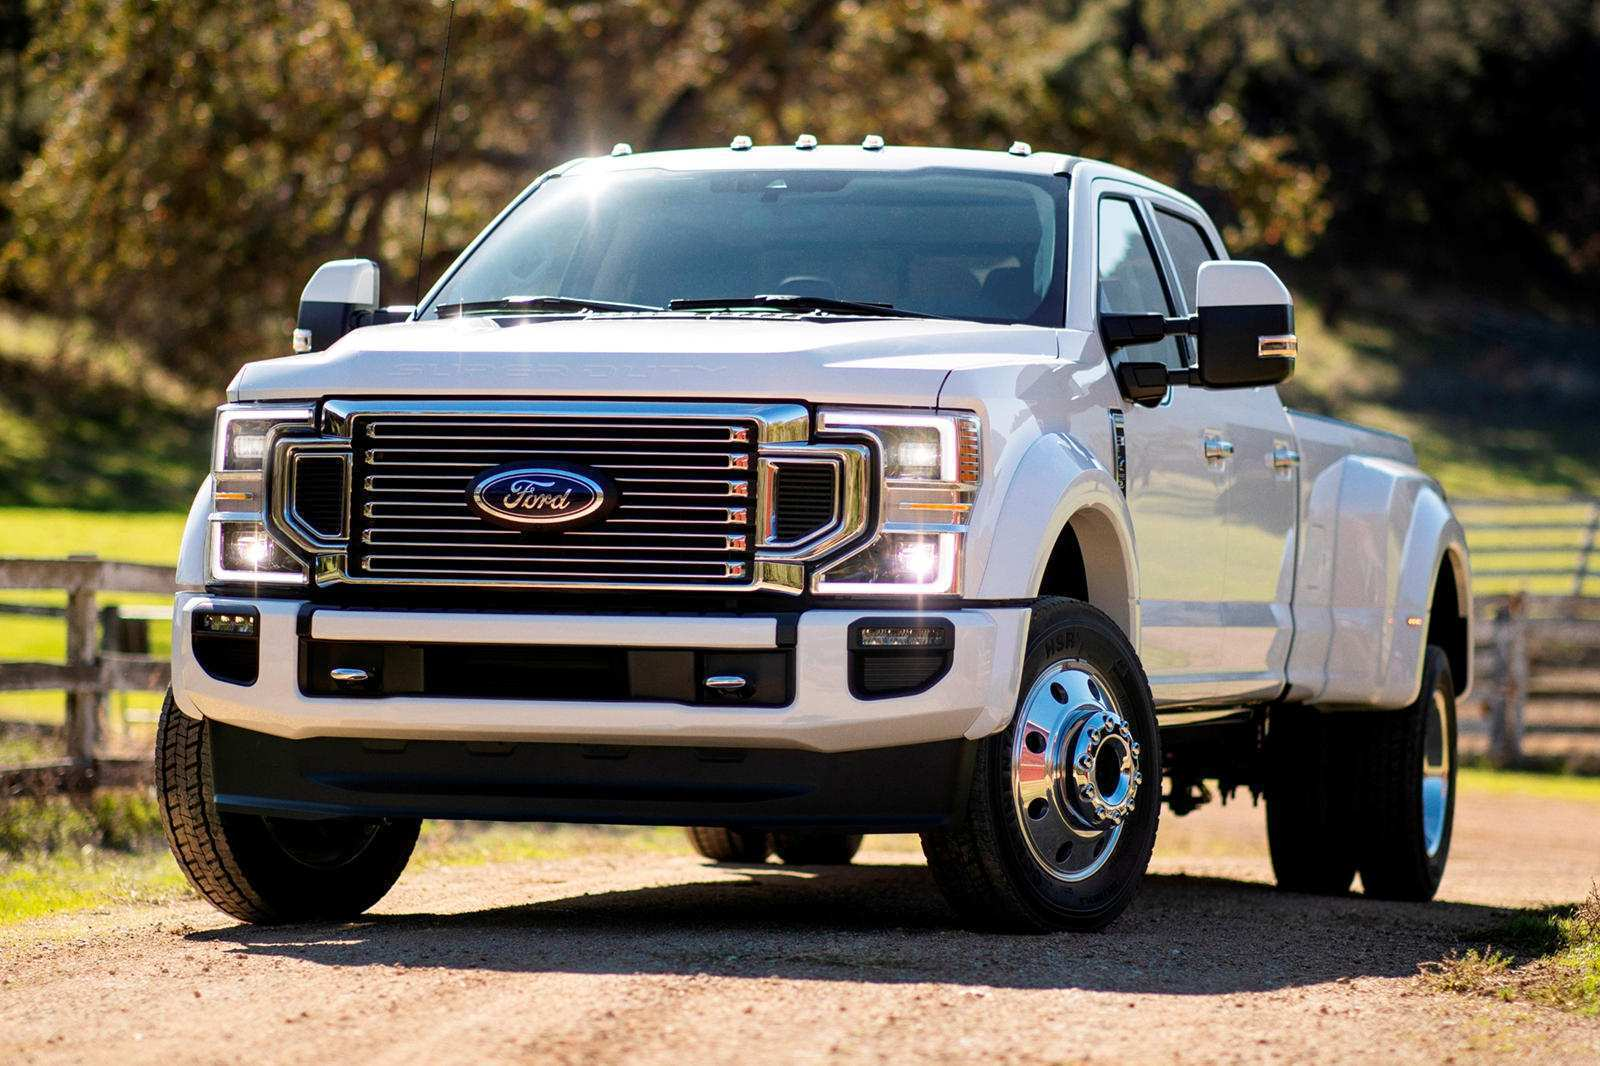 73 The 2020 Spy Shots Ford F350 Diesel Pictures | Review ...